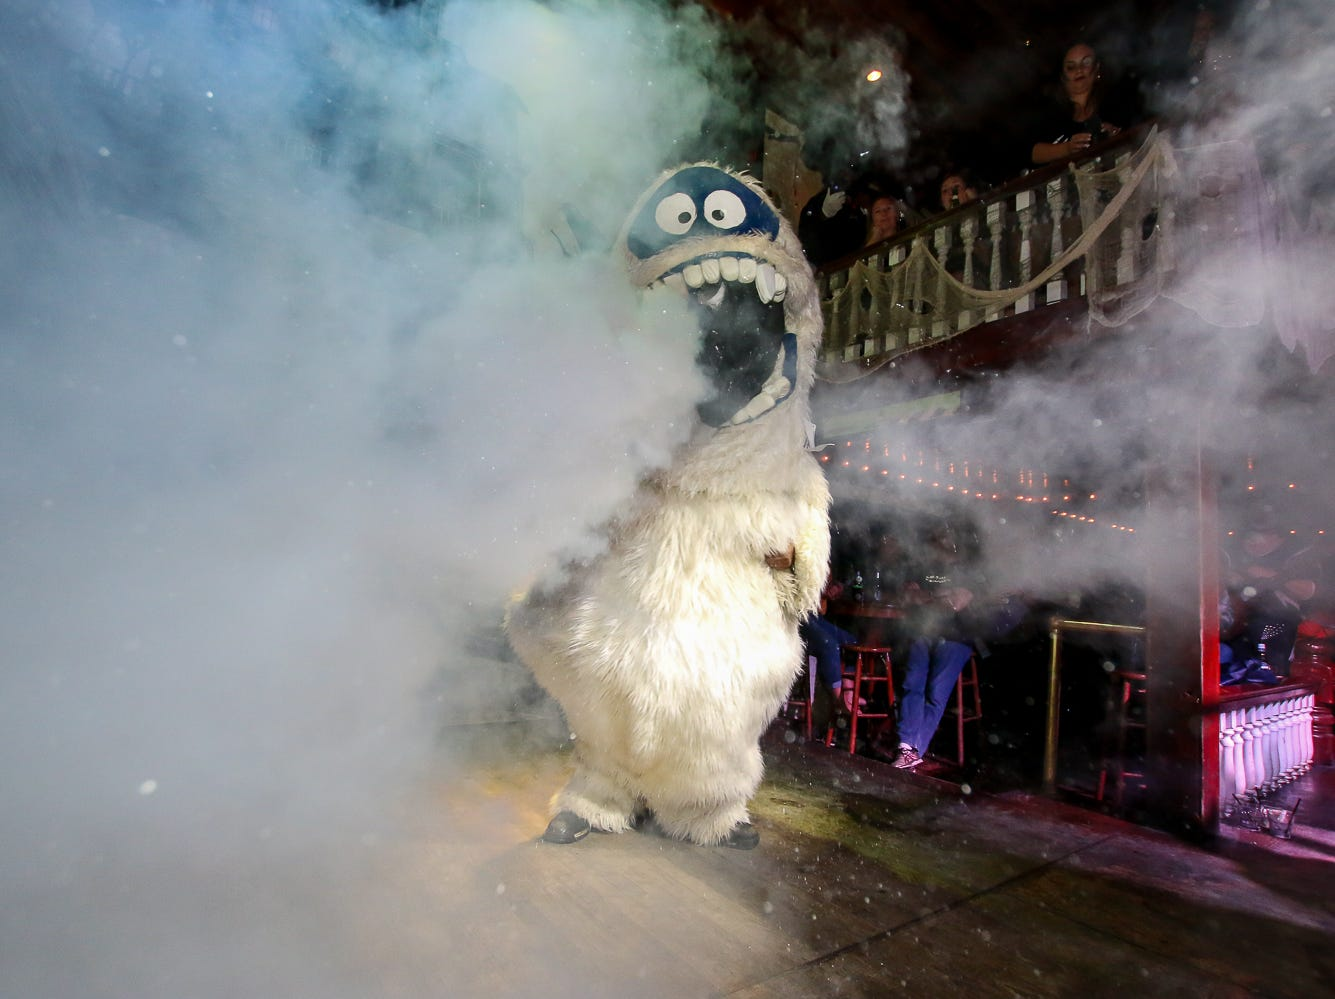 """Abominable Snowman"" won 5th place in the $1,000 grand prize Halloween costume contest, which featured over 100 entrants, at Seville Quarter on Wednesday, October 31, 2018."